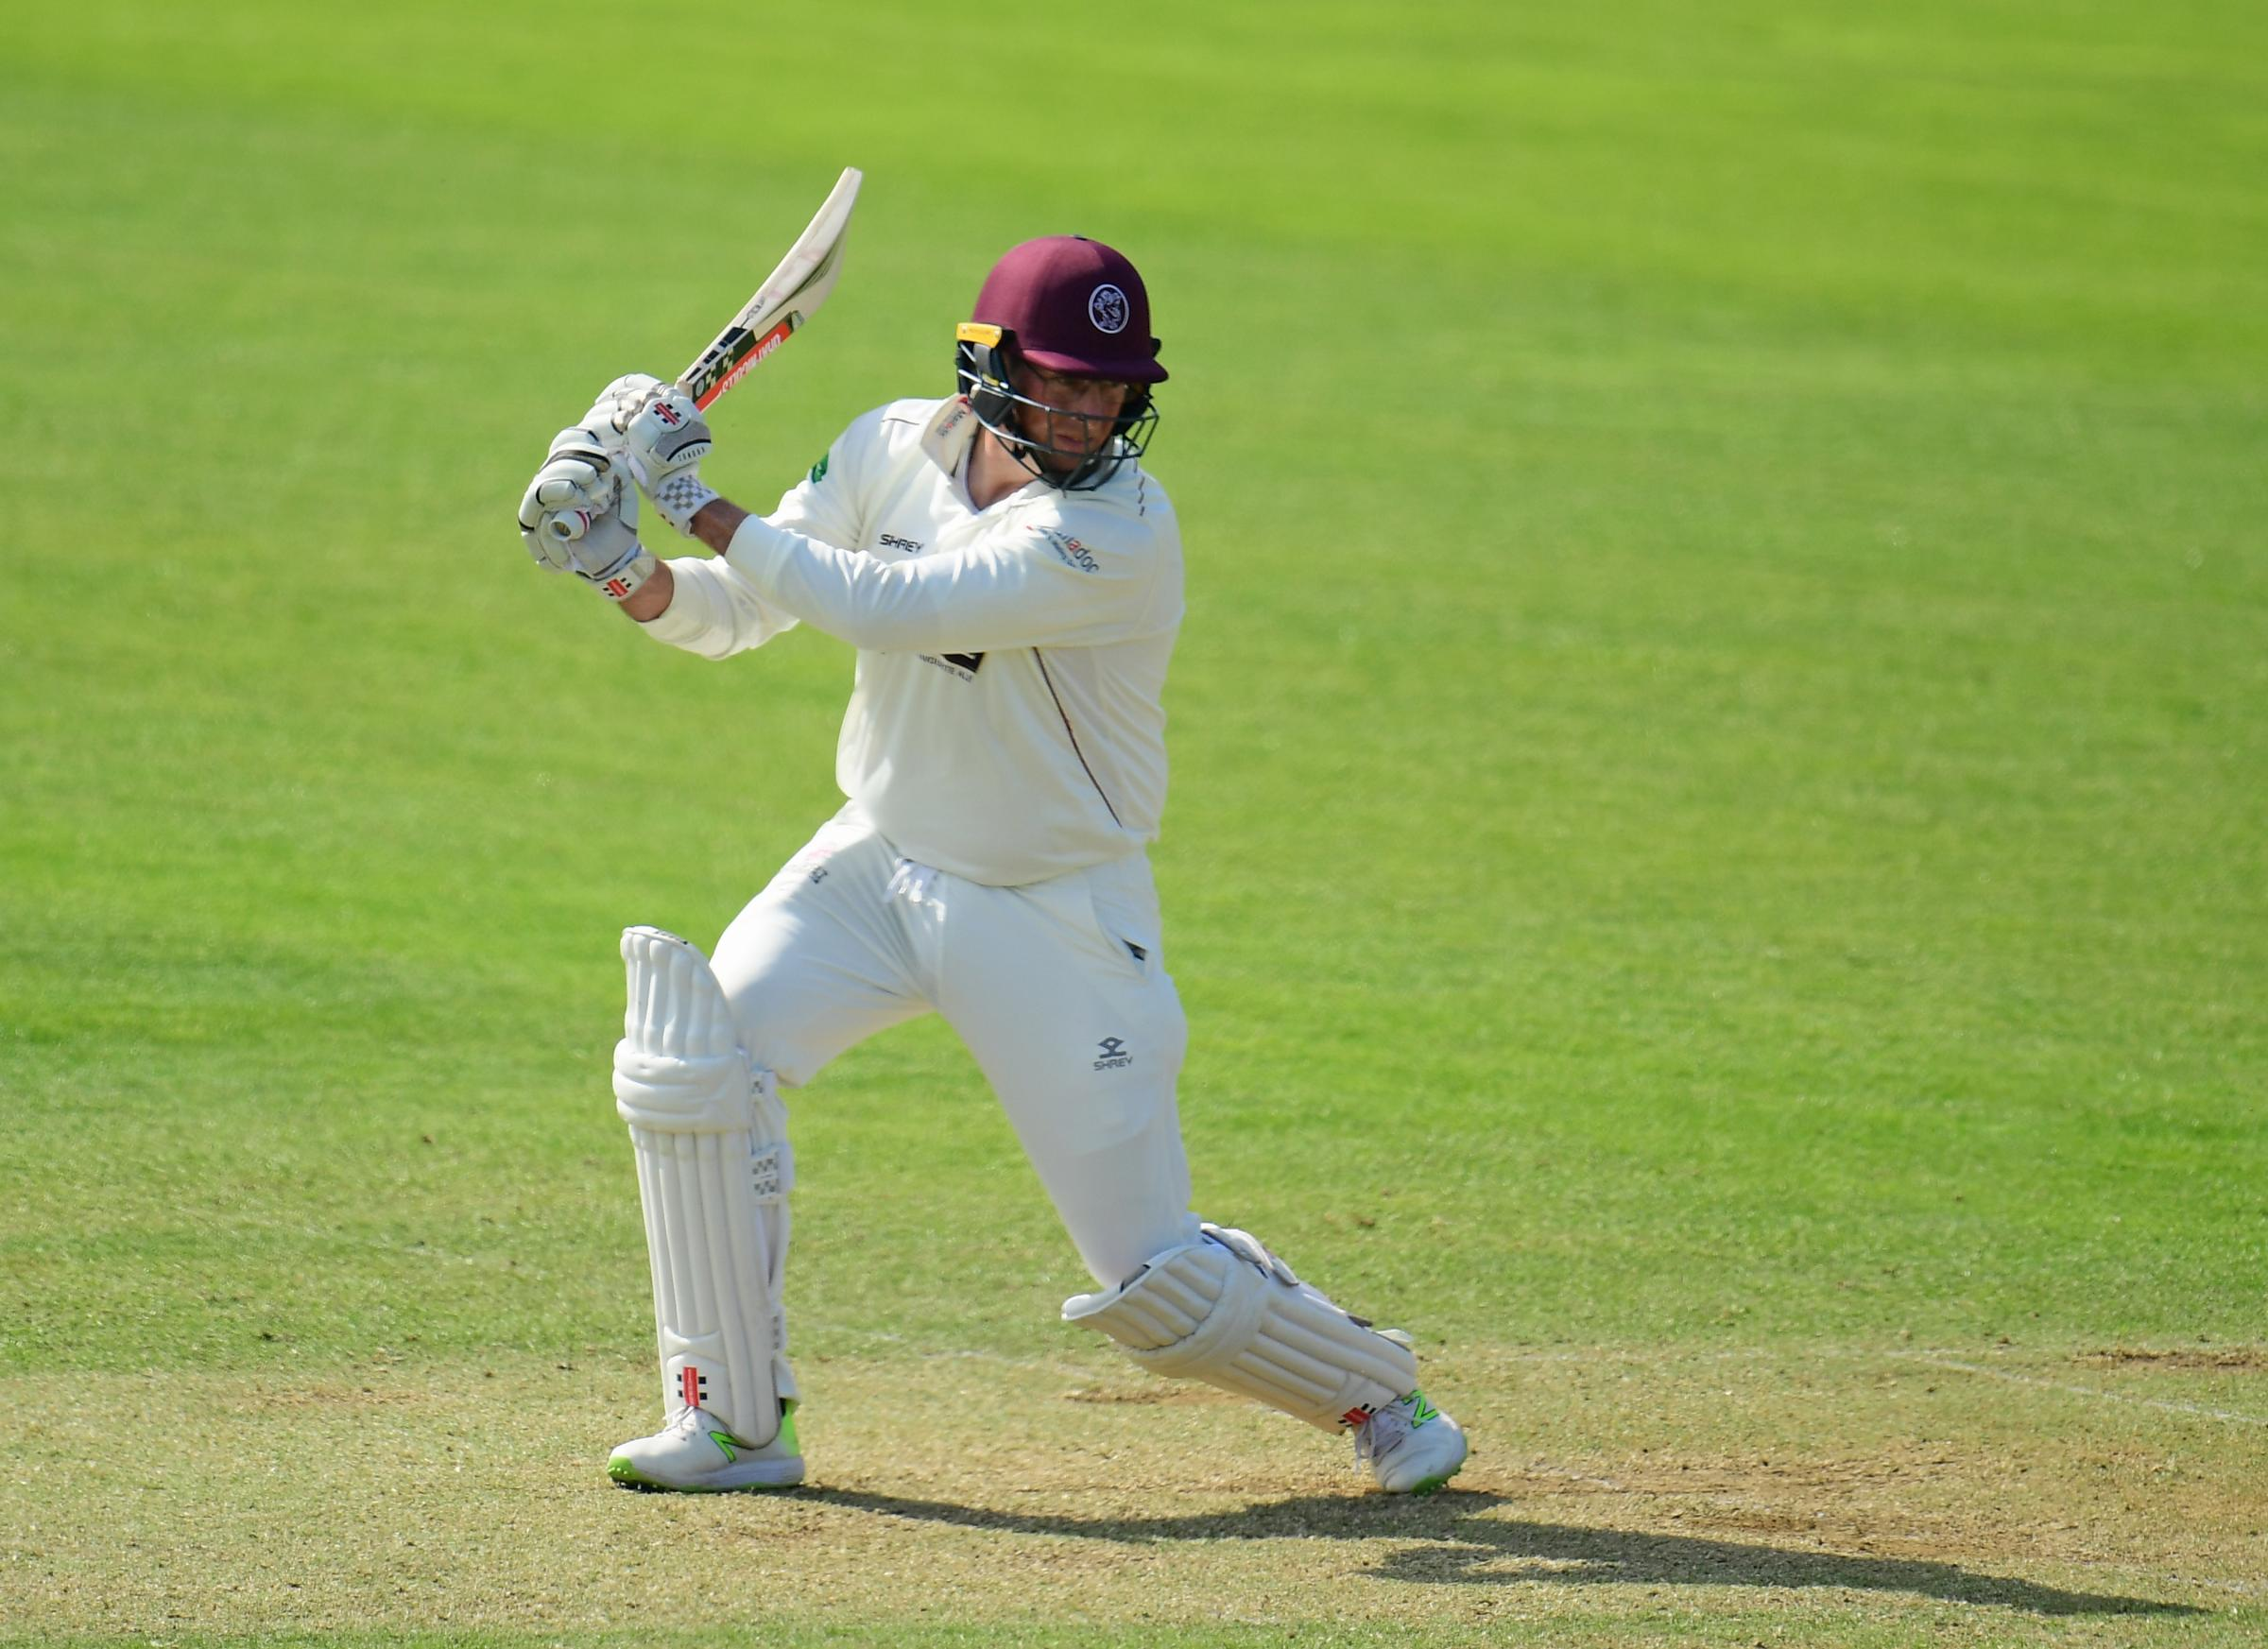 BACK IN ACTION: Marcus Trescothick is due to play for Somerset seconds against Sussex at Taunton Vale this week. Pic: Alex Davidson/SCCC